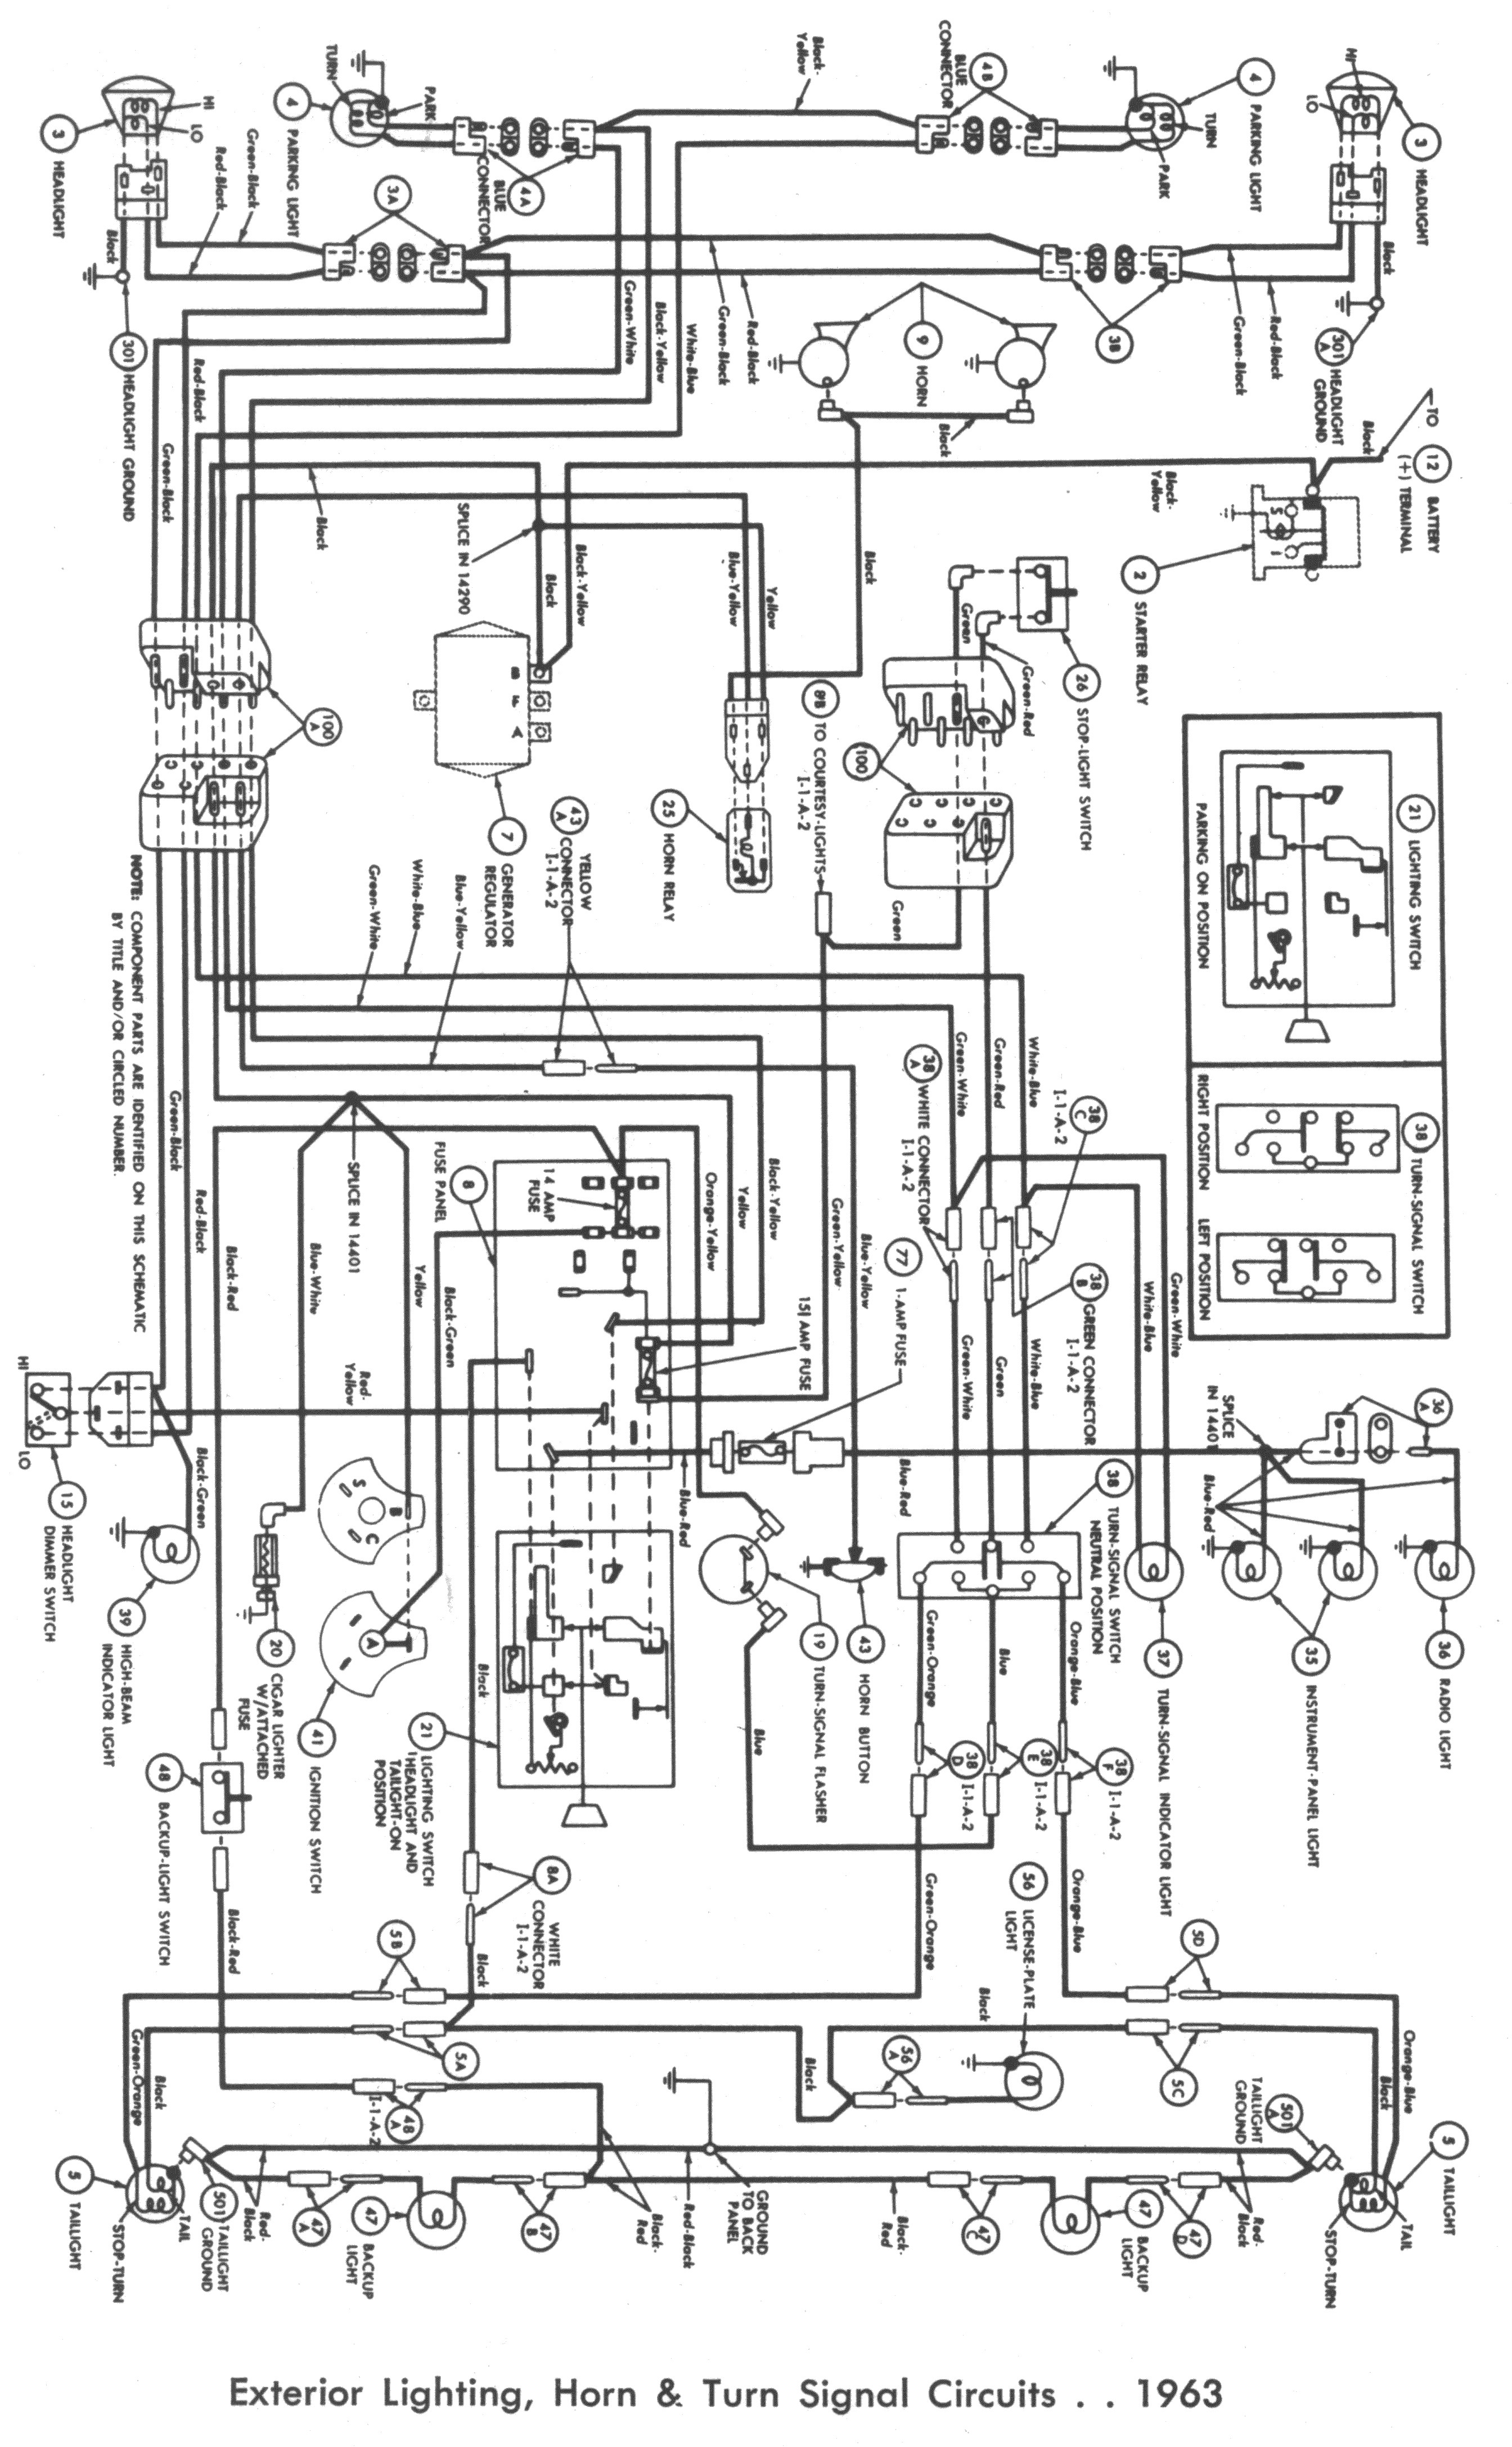 Wiring 61 62 144La falcon wiring diagrams 1964 ford falcon wiring diagram at fashall.co